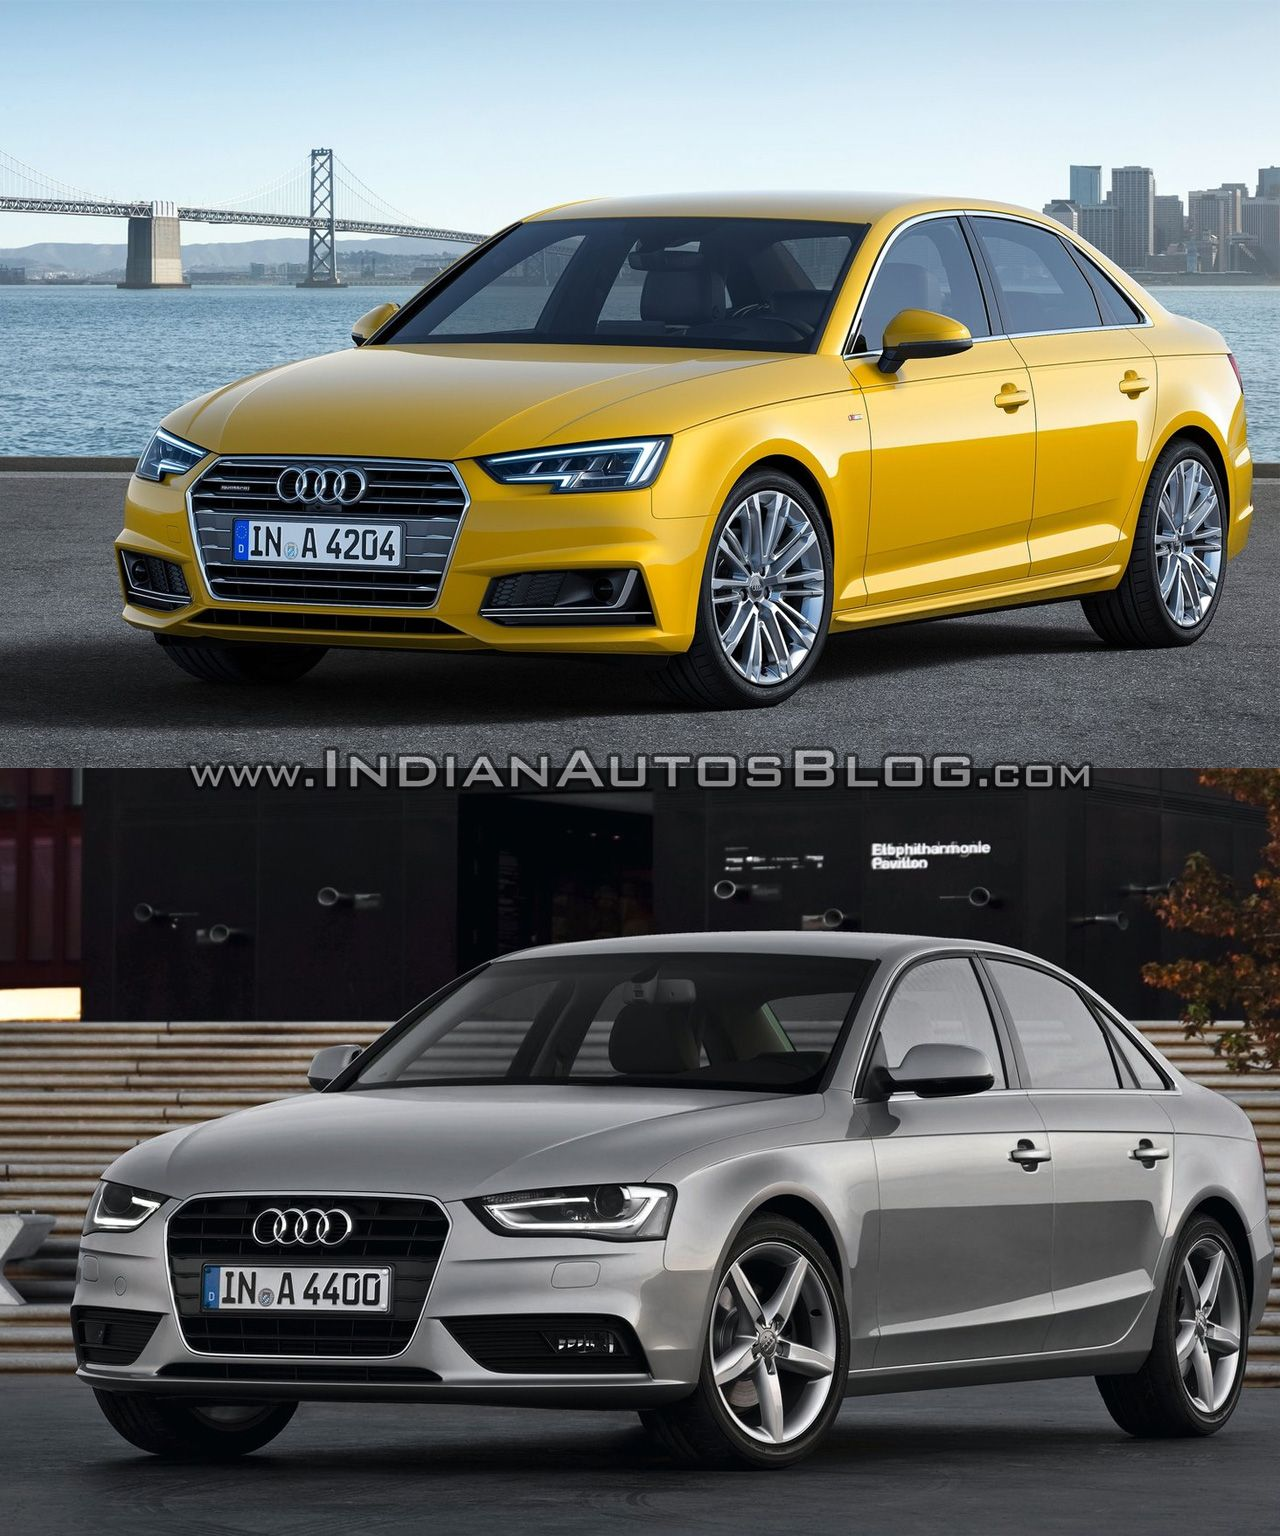 2016 audi a4 b9 vs 2013 audi a4 b8 old vs new cars daily updated pinterest as. Black Bedroom Furniture Sets. Home Design Ideas